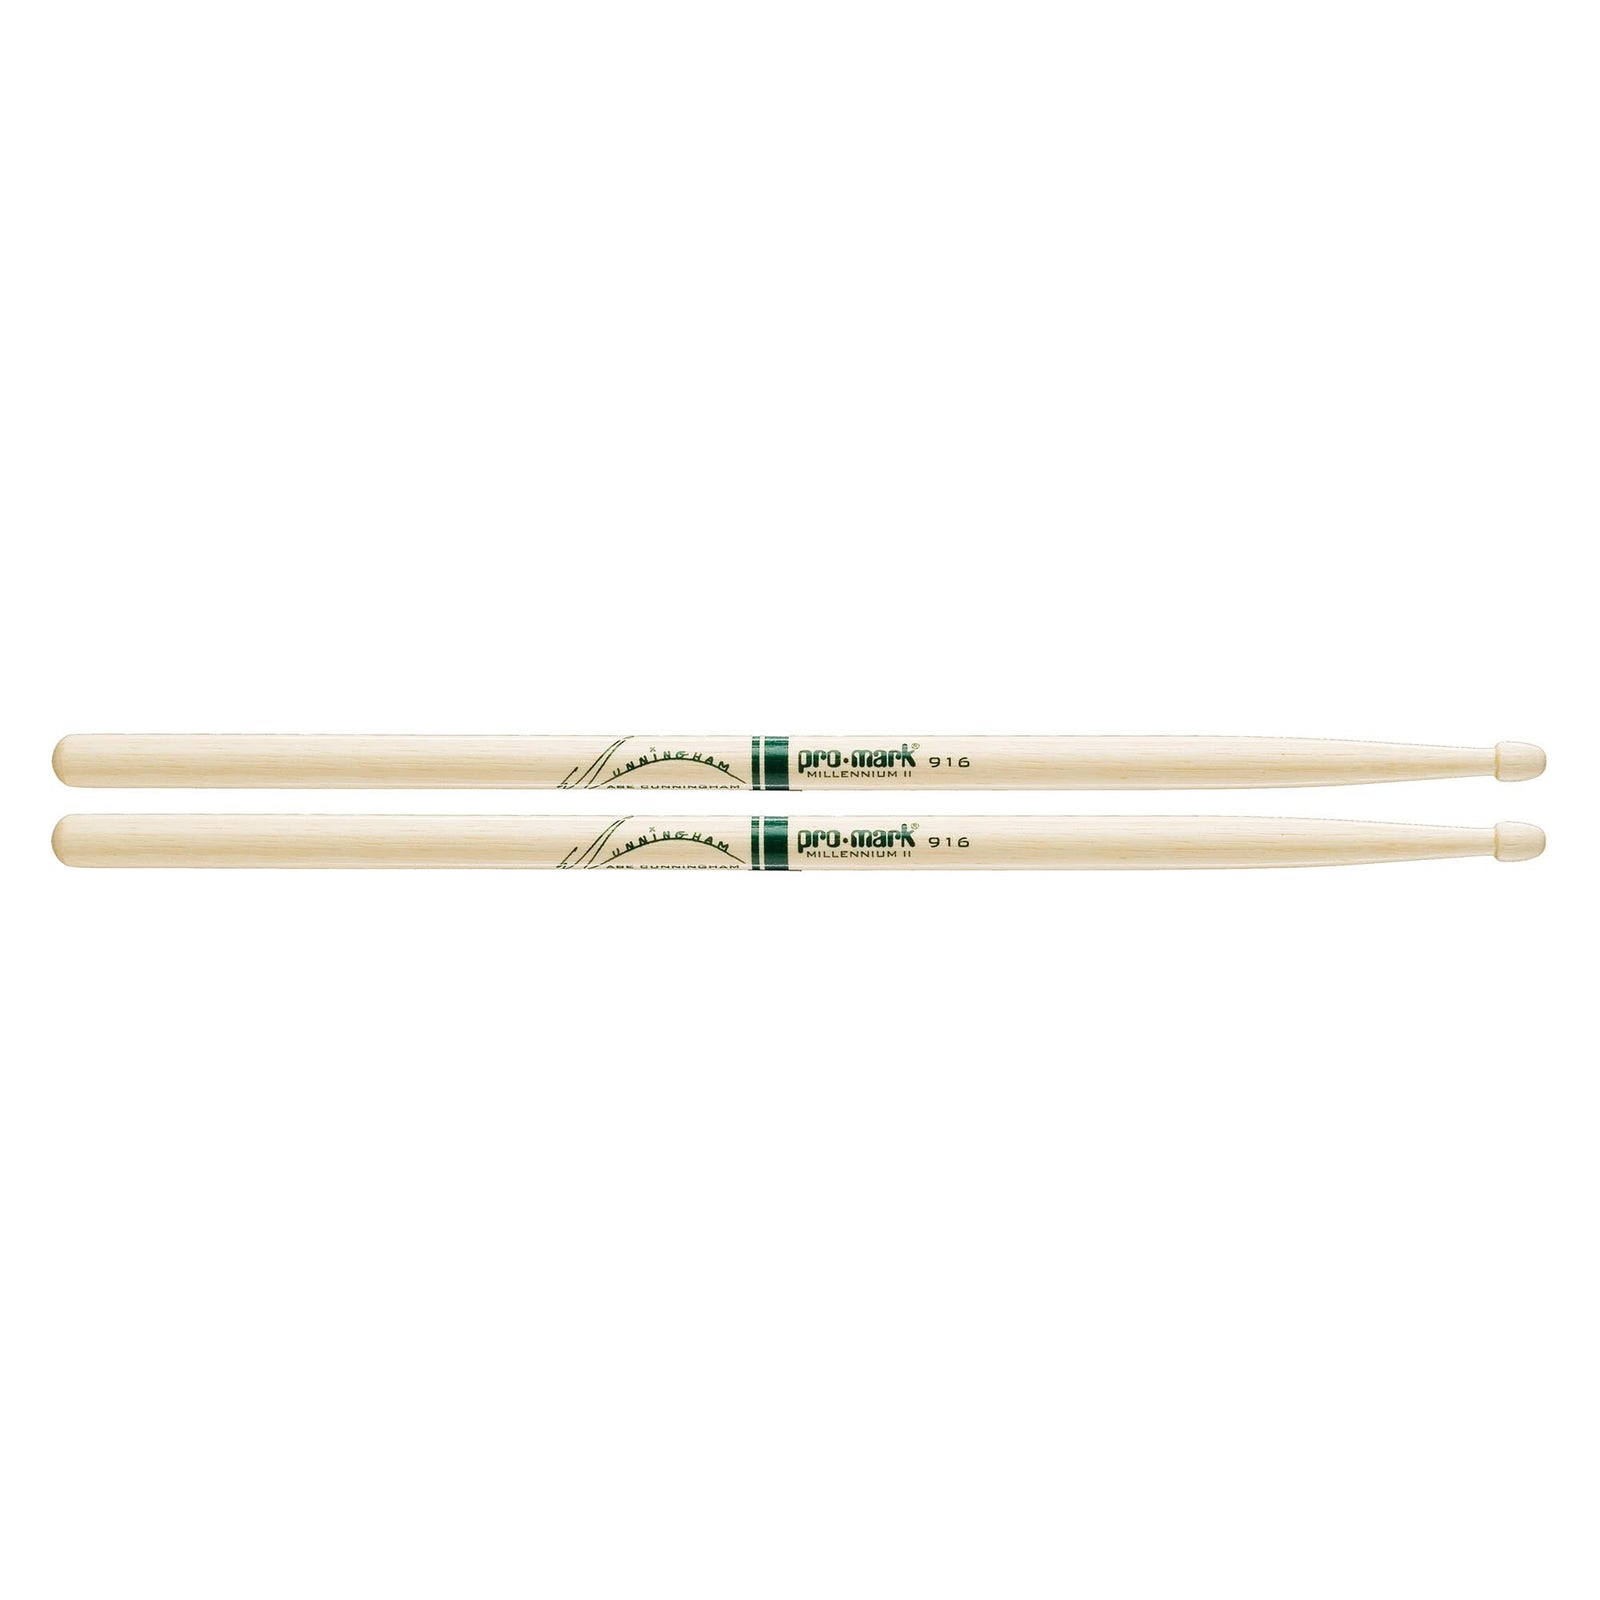 Promark TX916W Abe Cunningham Hickory Wood Tip Drumsticks